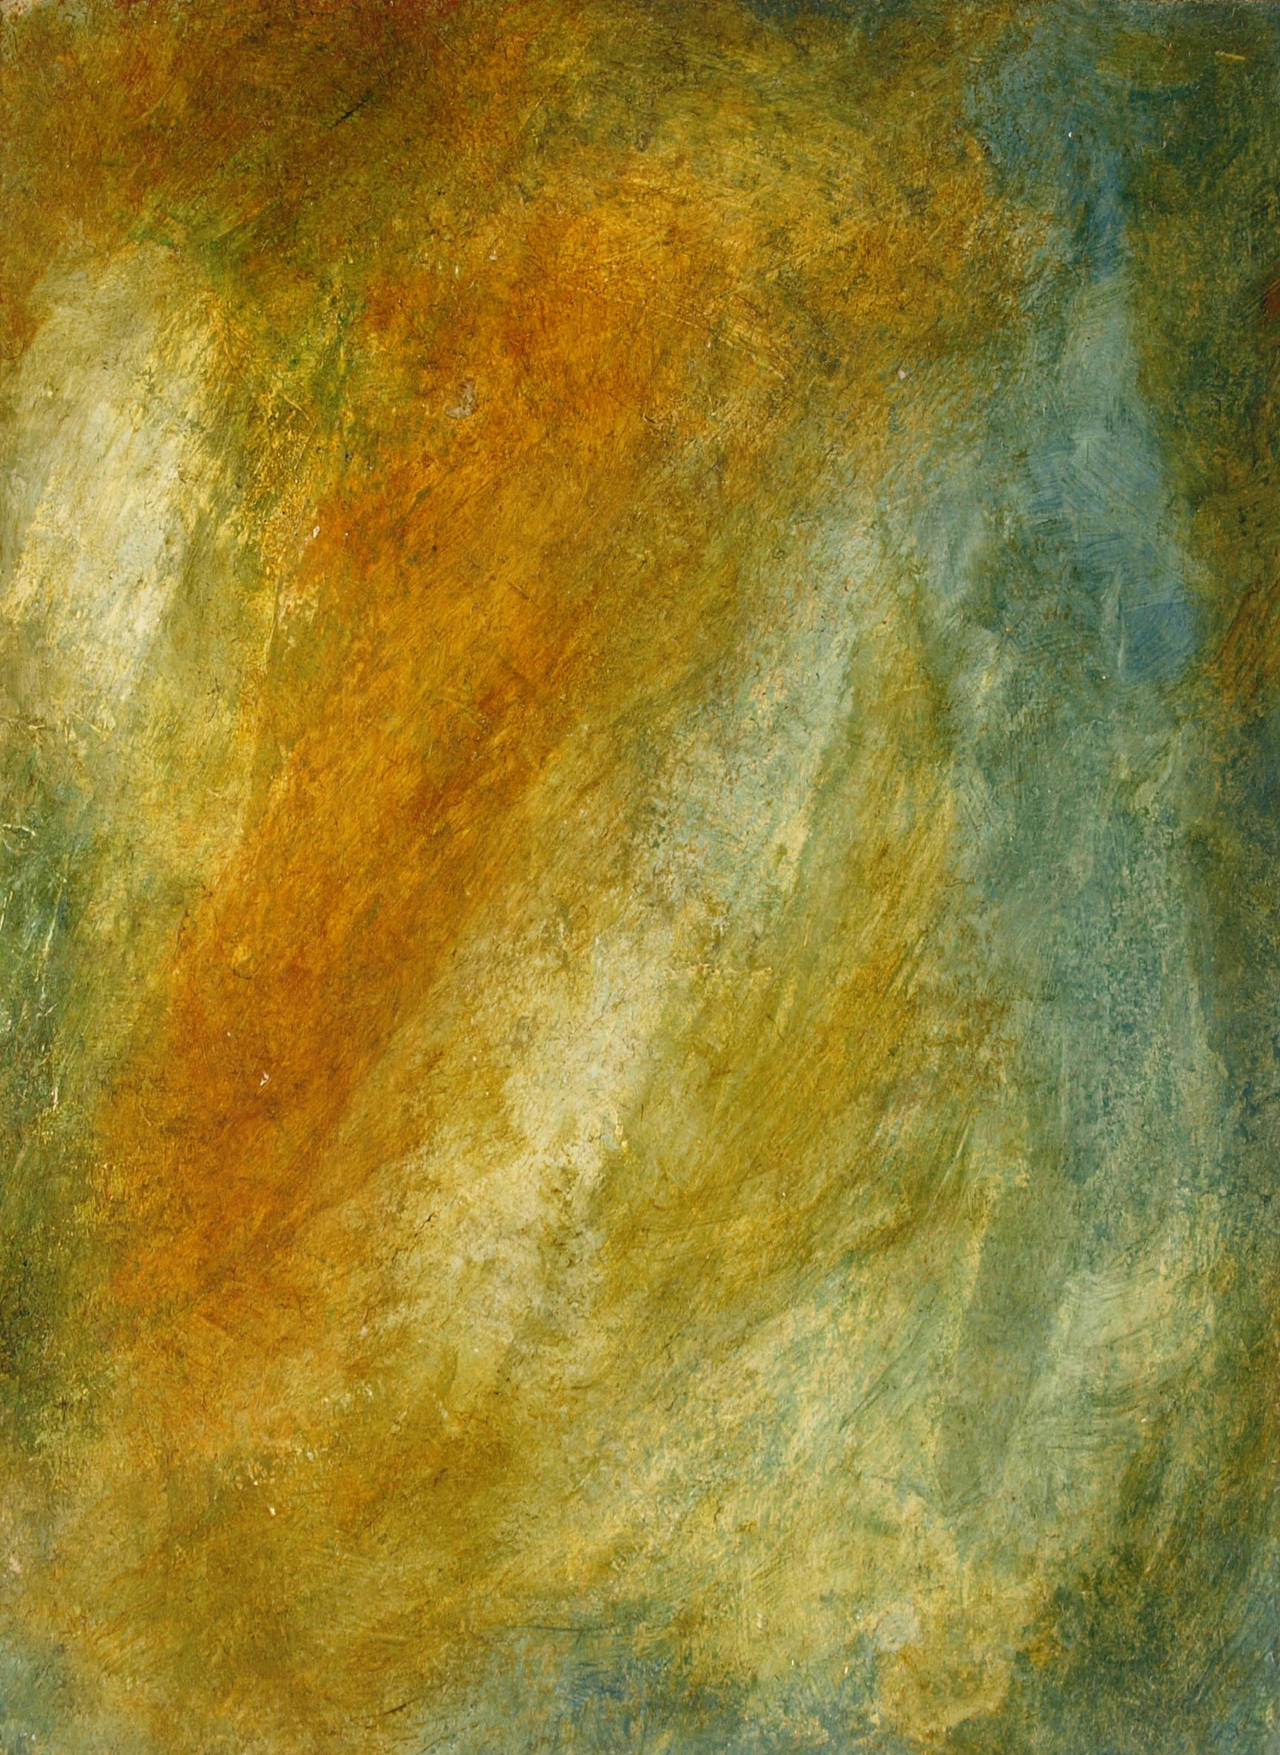 Abstract Dirty Brown and Blue by coiplet